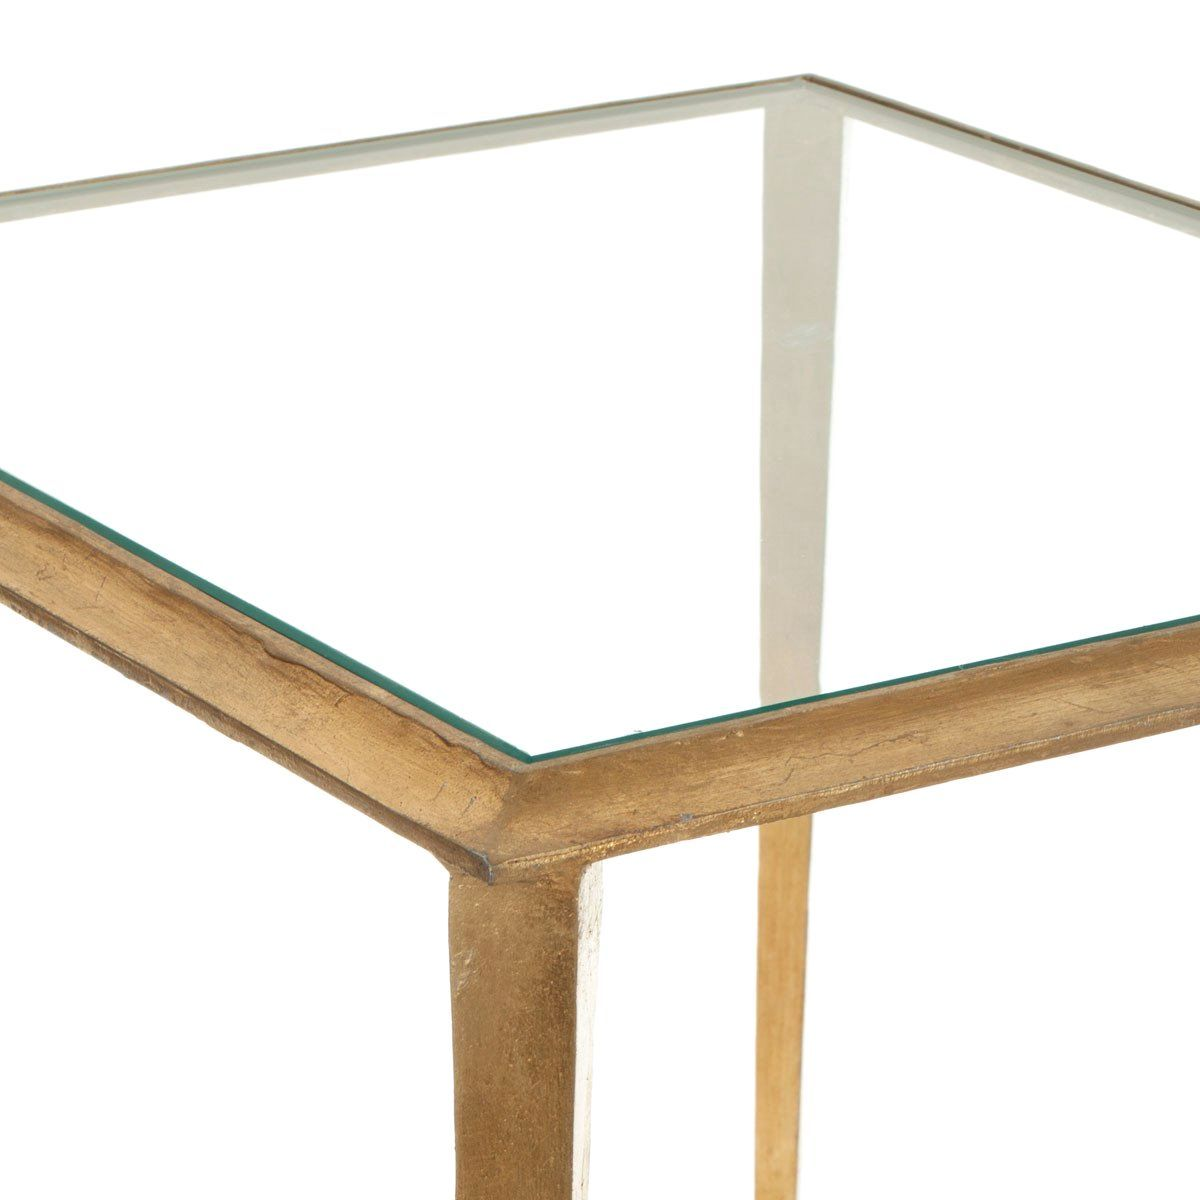 amazing safavieh tory accent table clear glass top side tables gold legs round metal large garden cover modern lamps for bedroom sears patio sets small white corner desk sunbrella